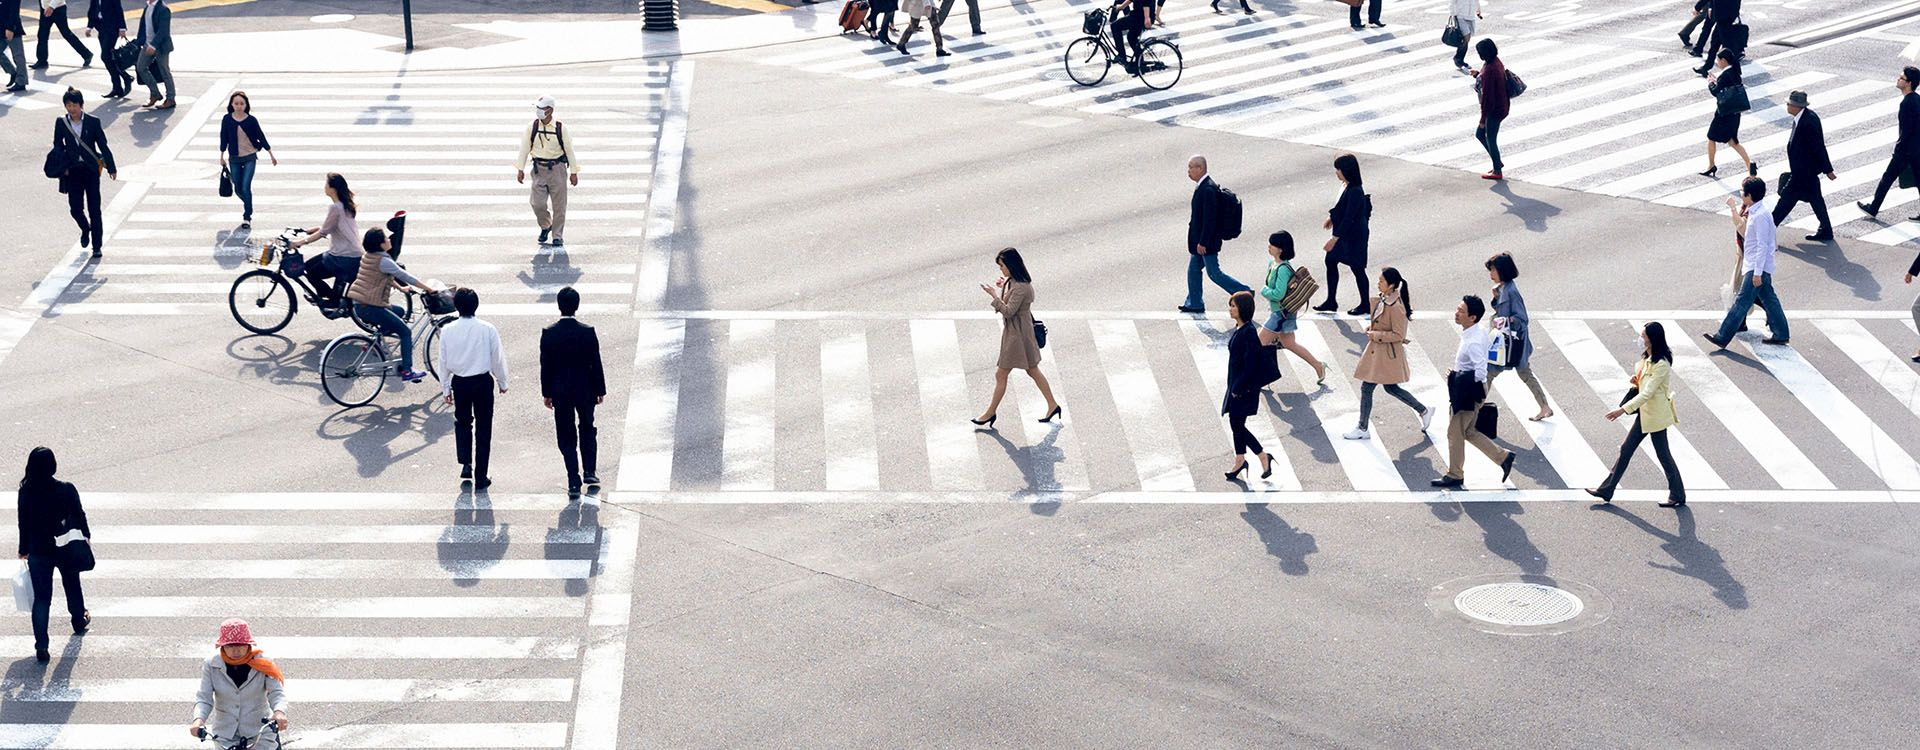 Busy Pedestrian Crossing Enabling Successful Journeys and Creating Great Places